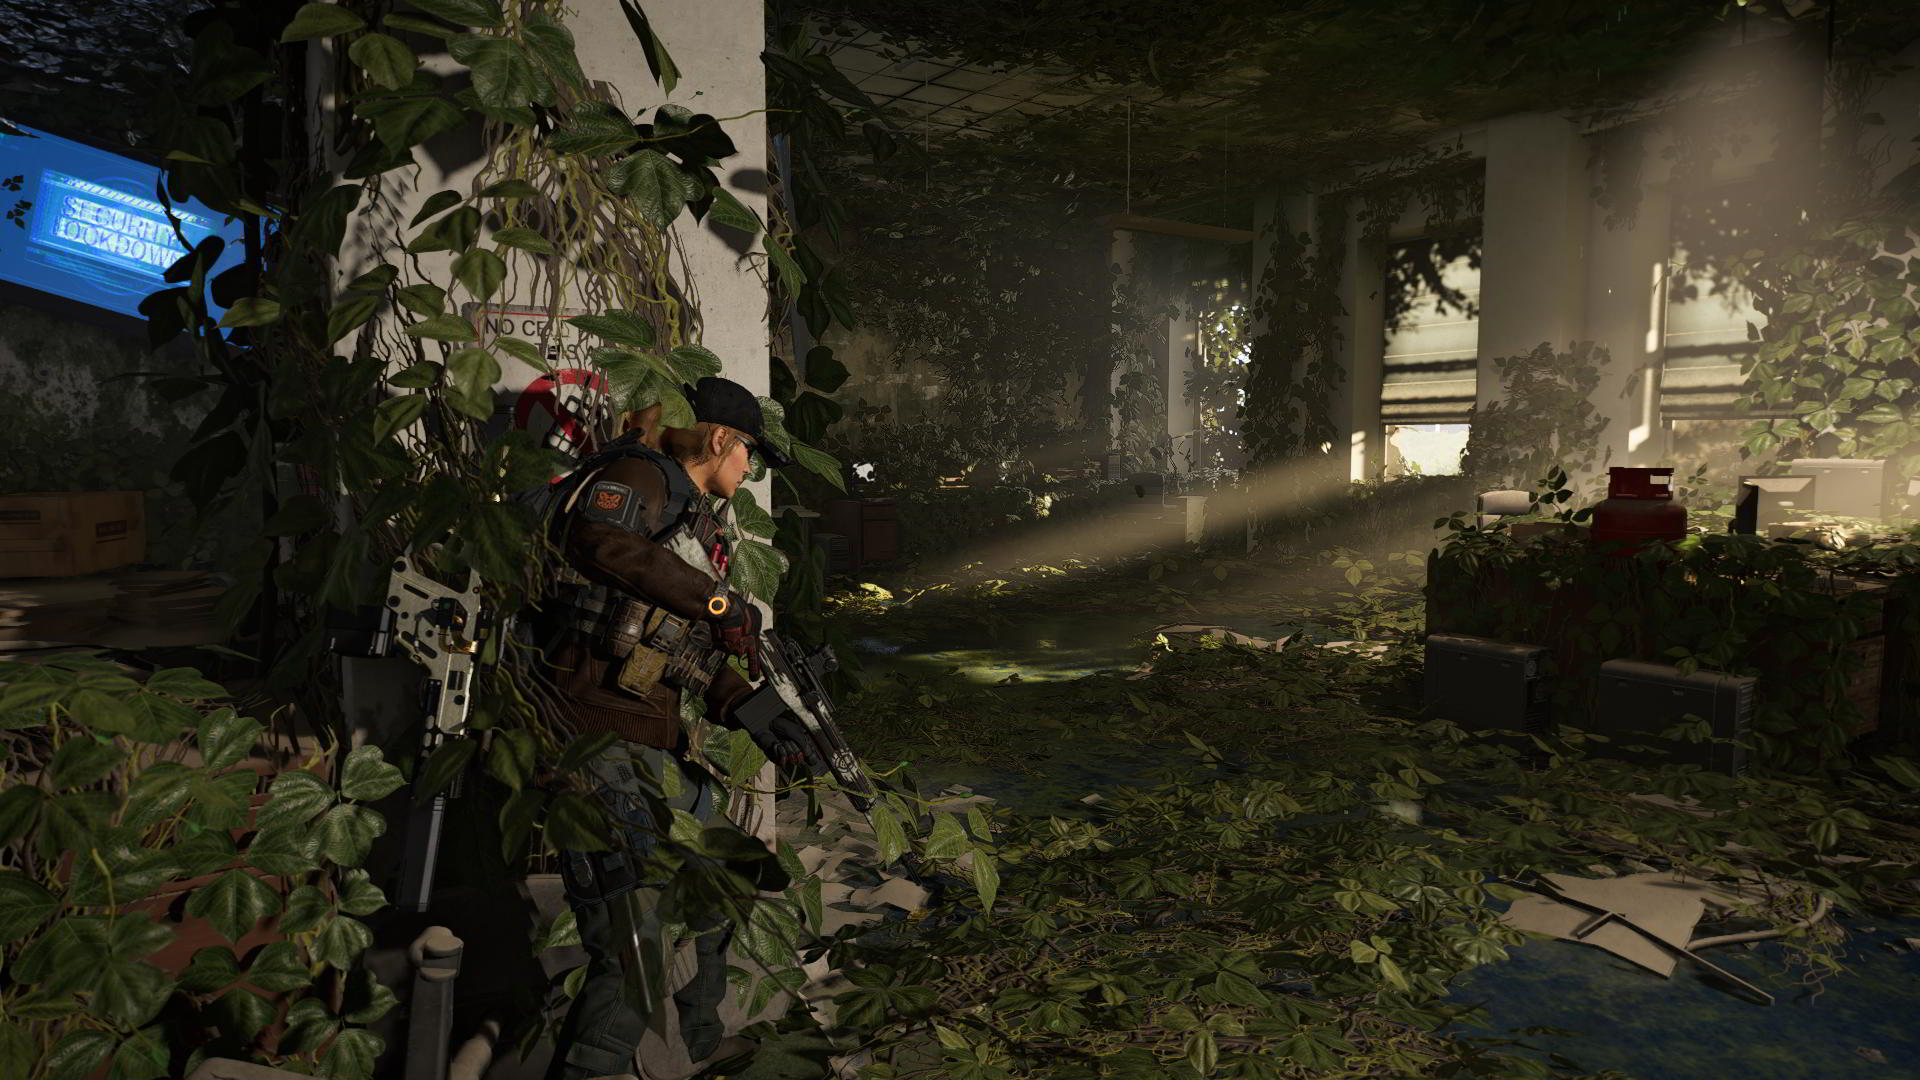 Tom Clancy's The Division 2_20200227_150255.jpg